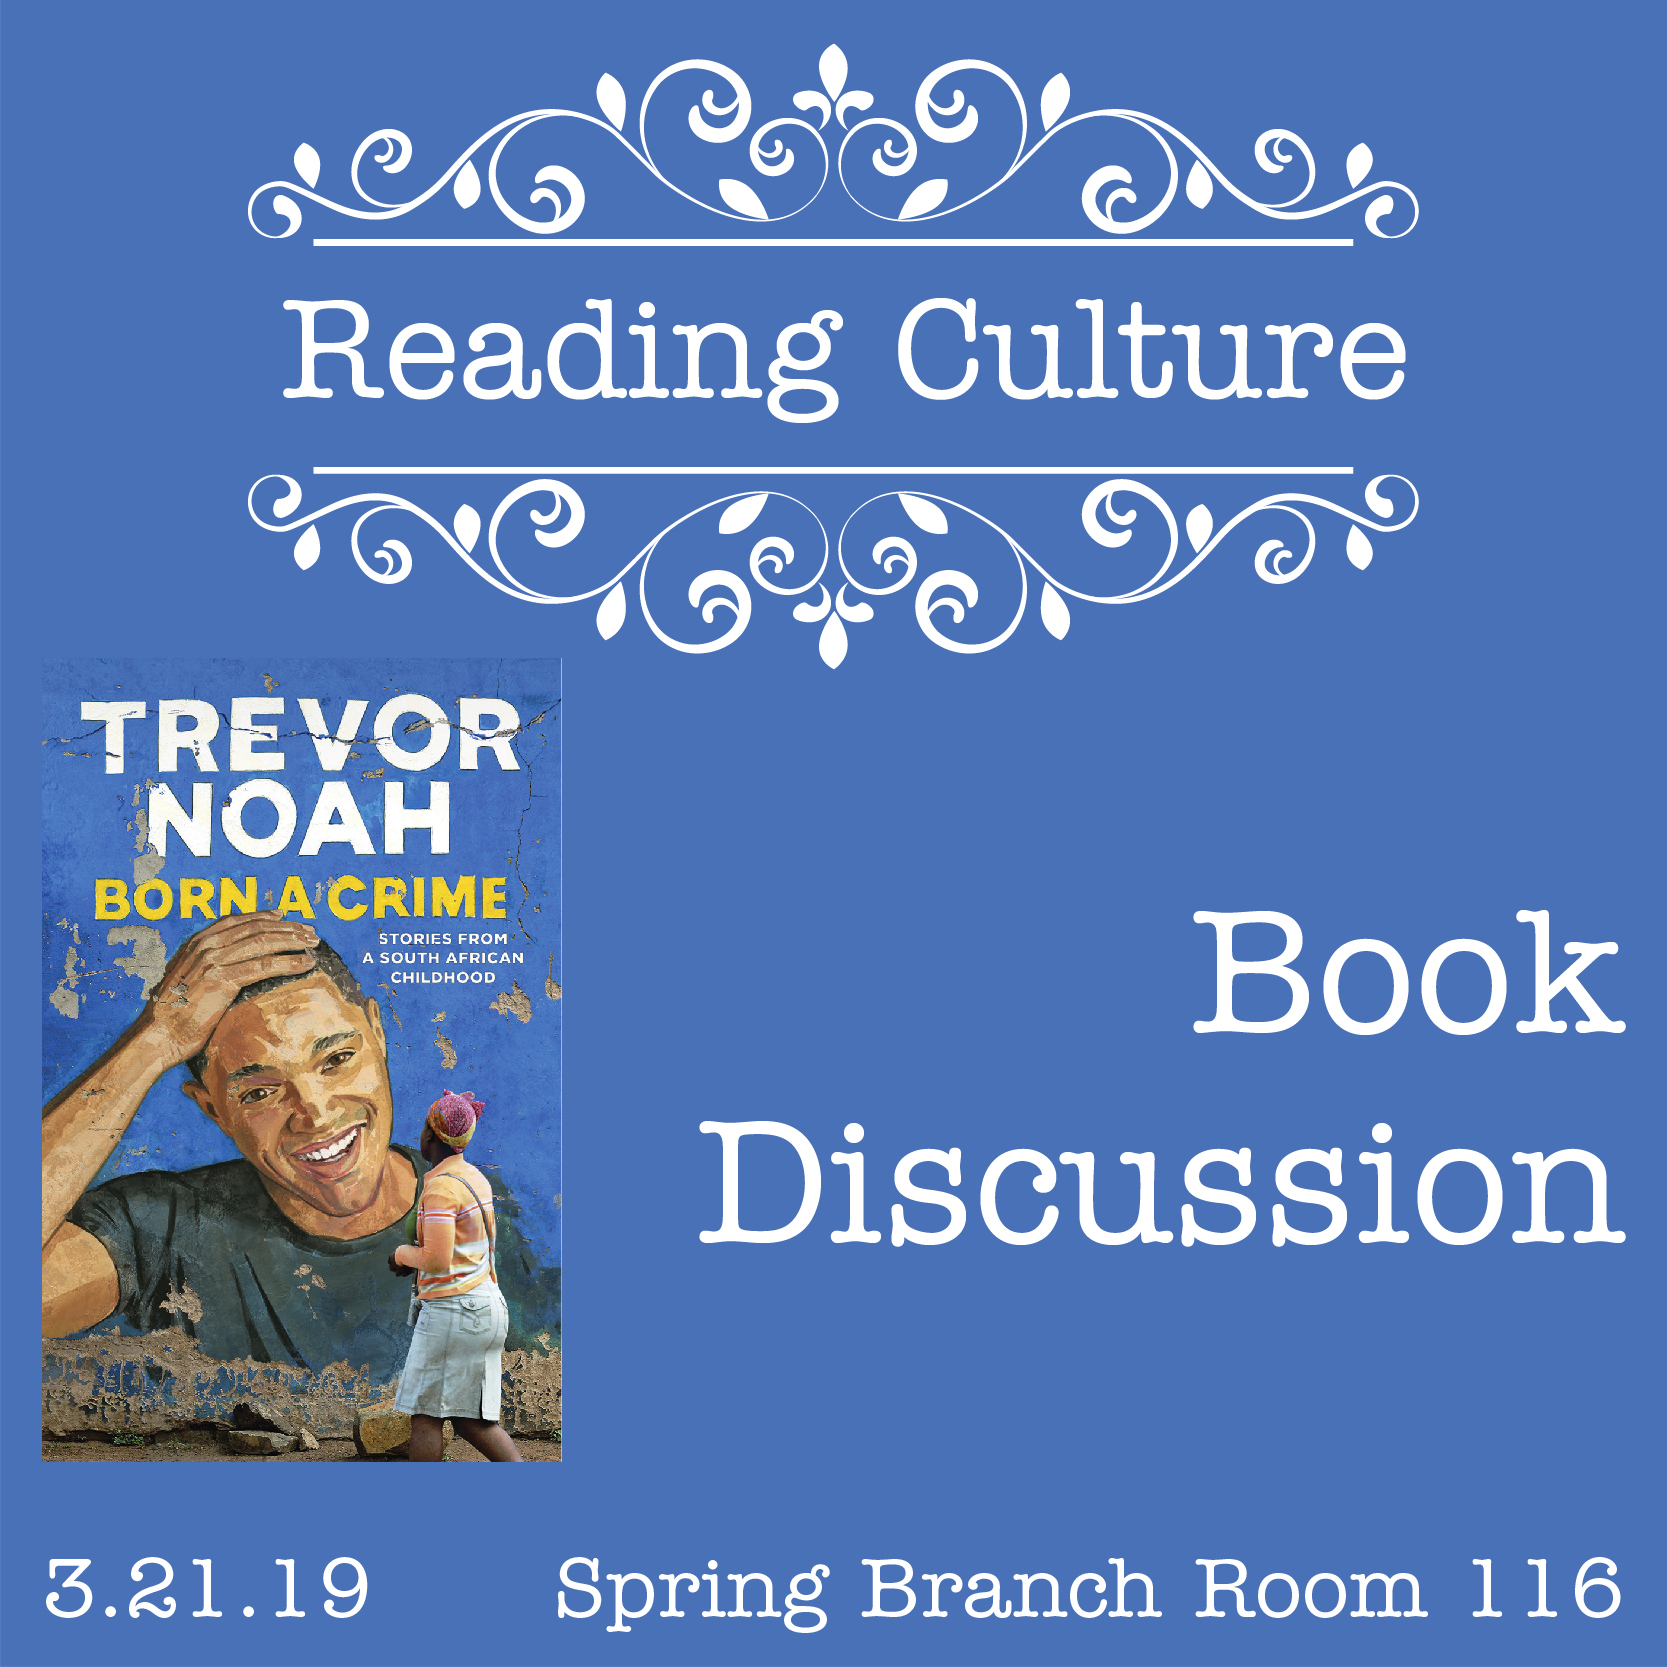 [SB] Reading Culture Book Discussion